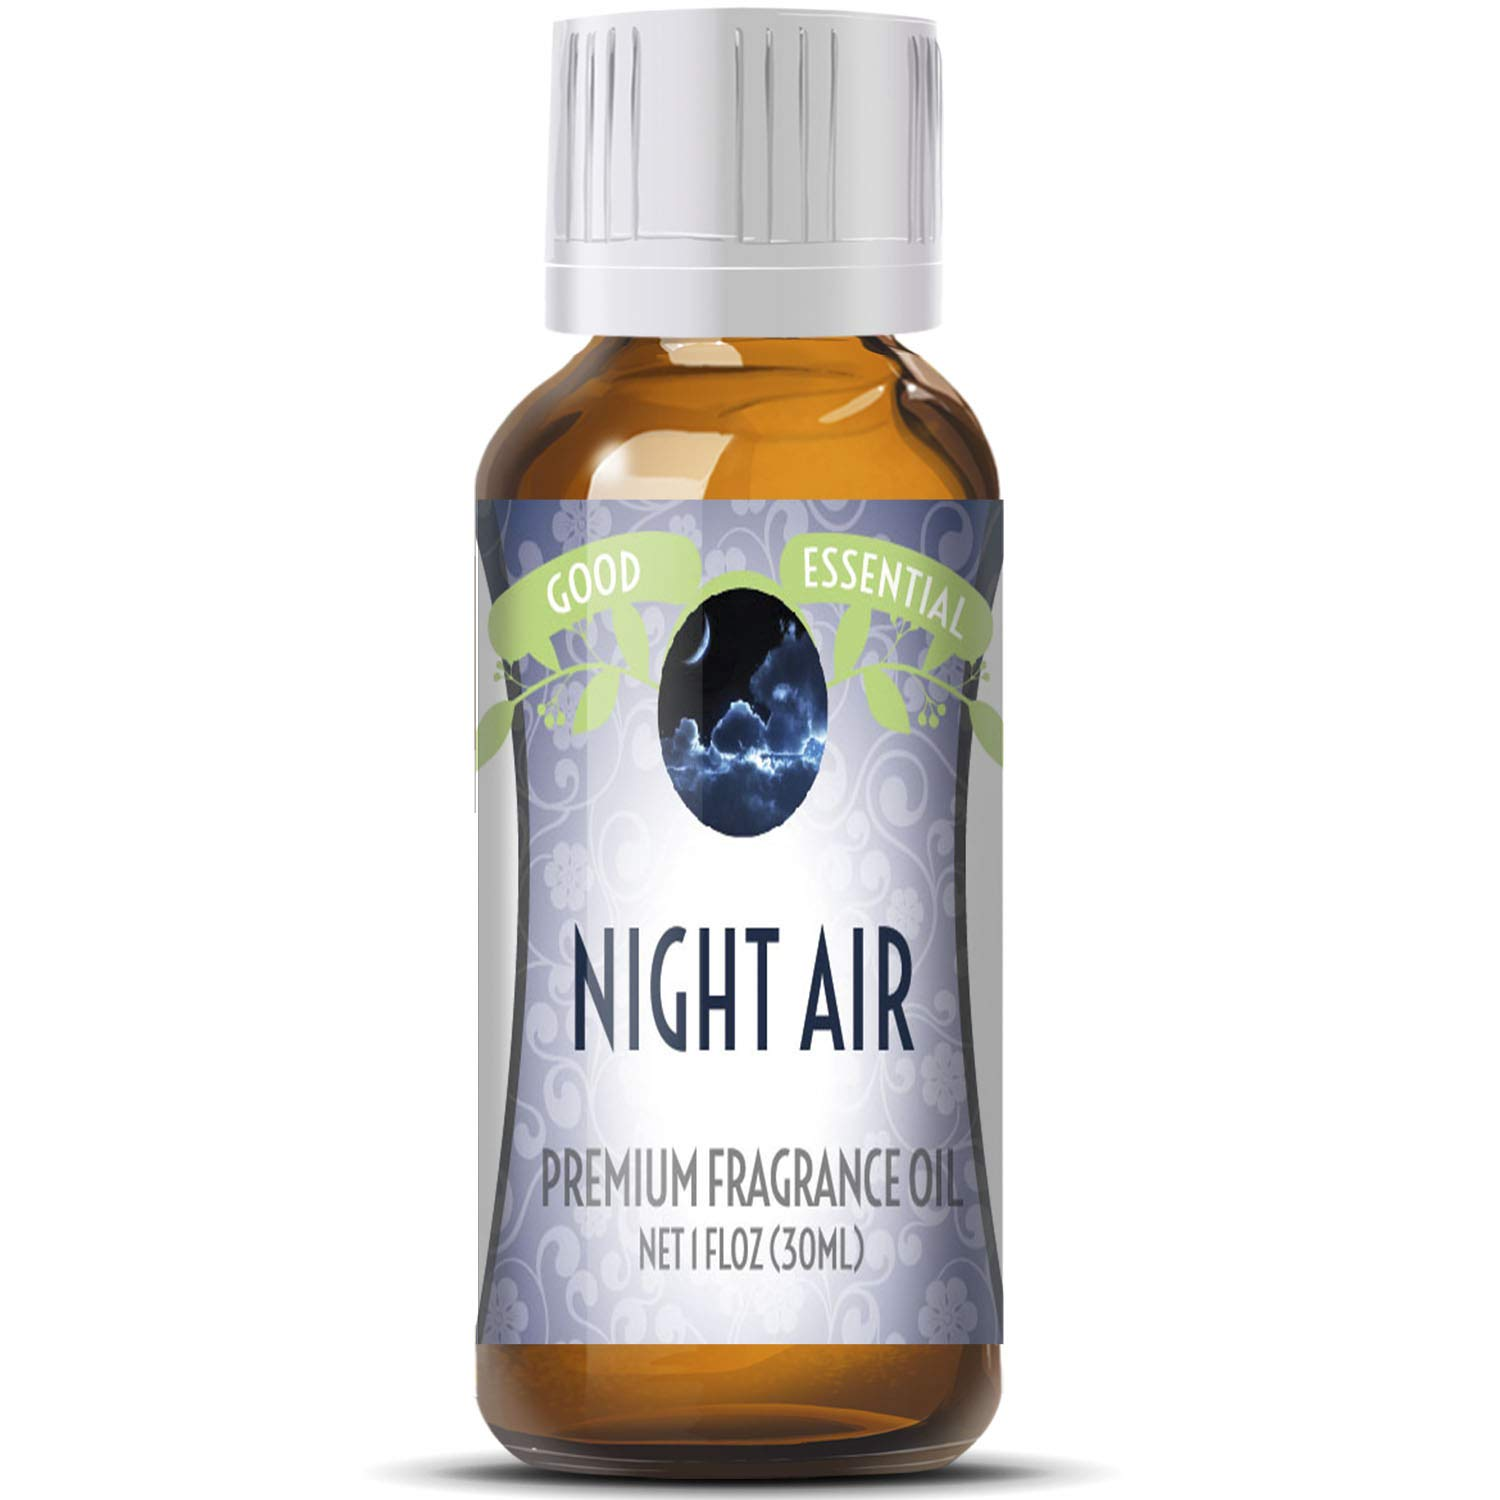 Night Air Scented Oil by Good Essential (Huge 1oz Bottle - Premium Grade Fragrance Oil) - Perfect for Aromatherapy, Soaps, Candles, Slime, Lotions, and More!